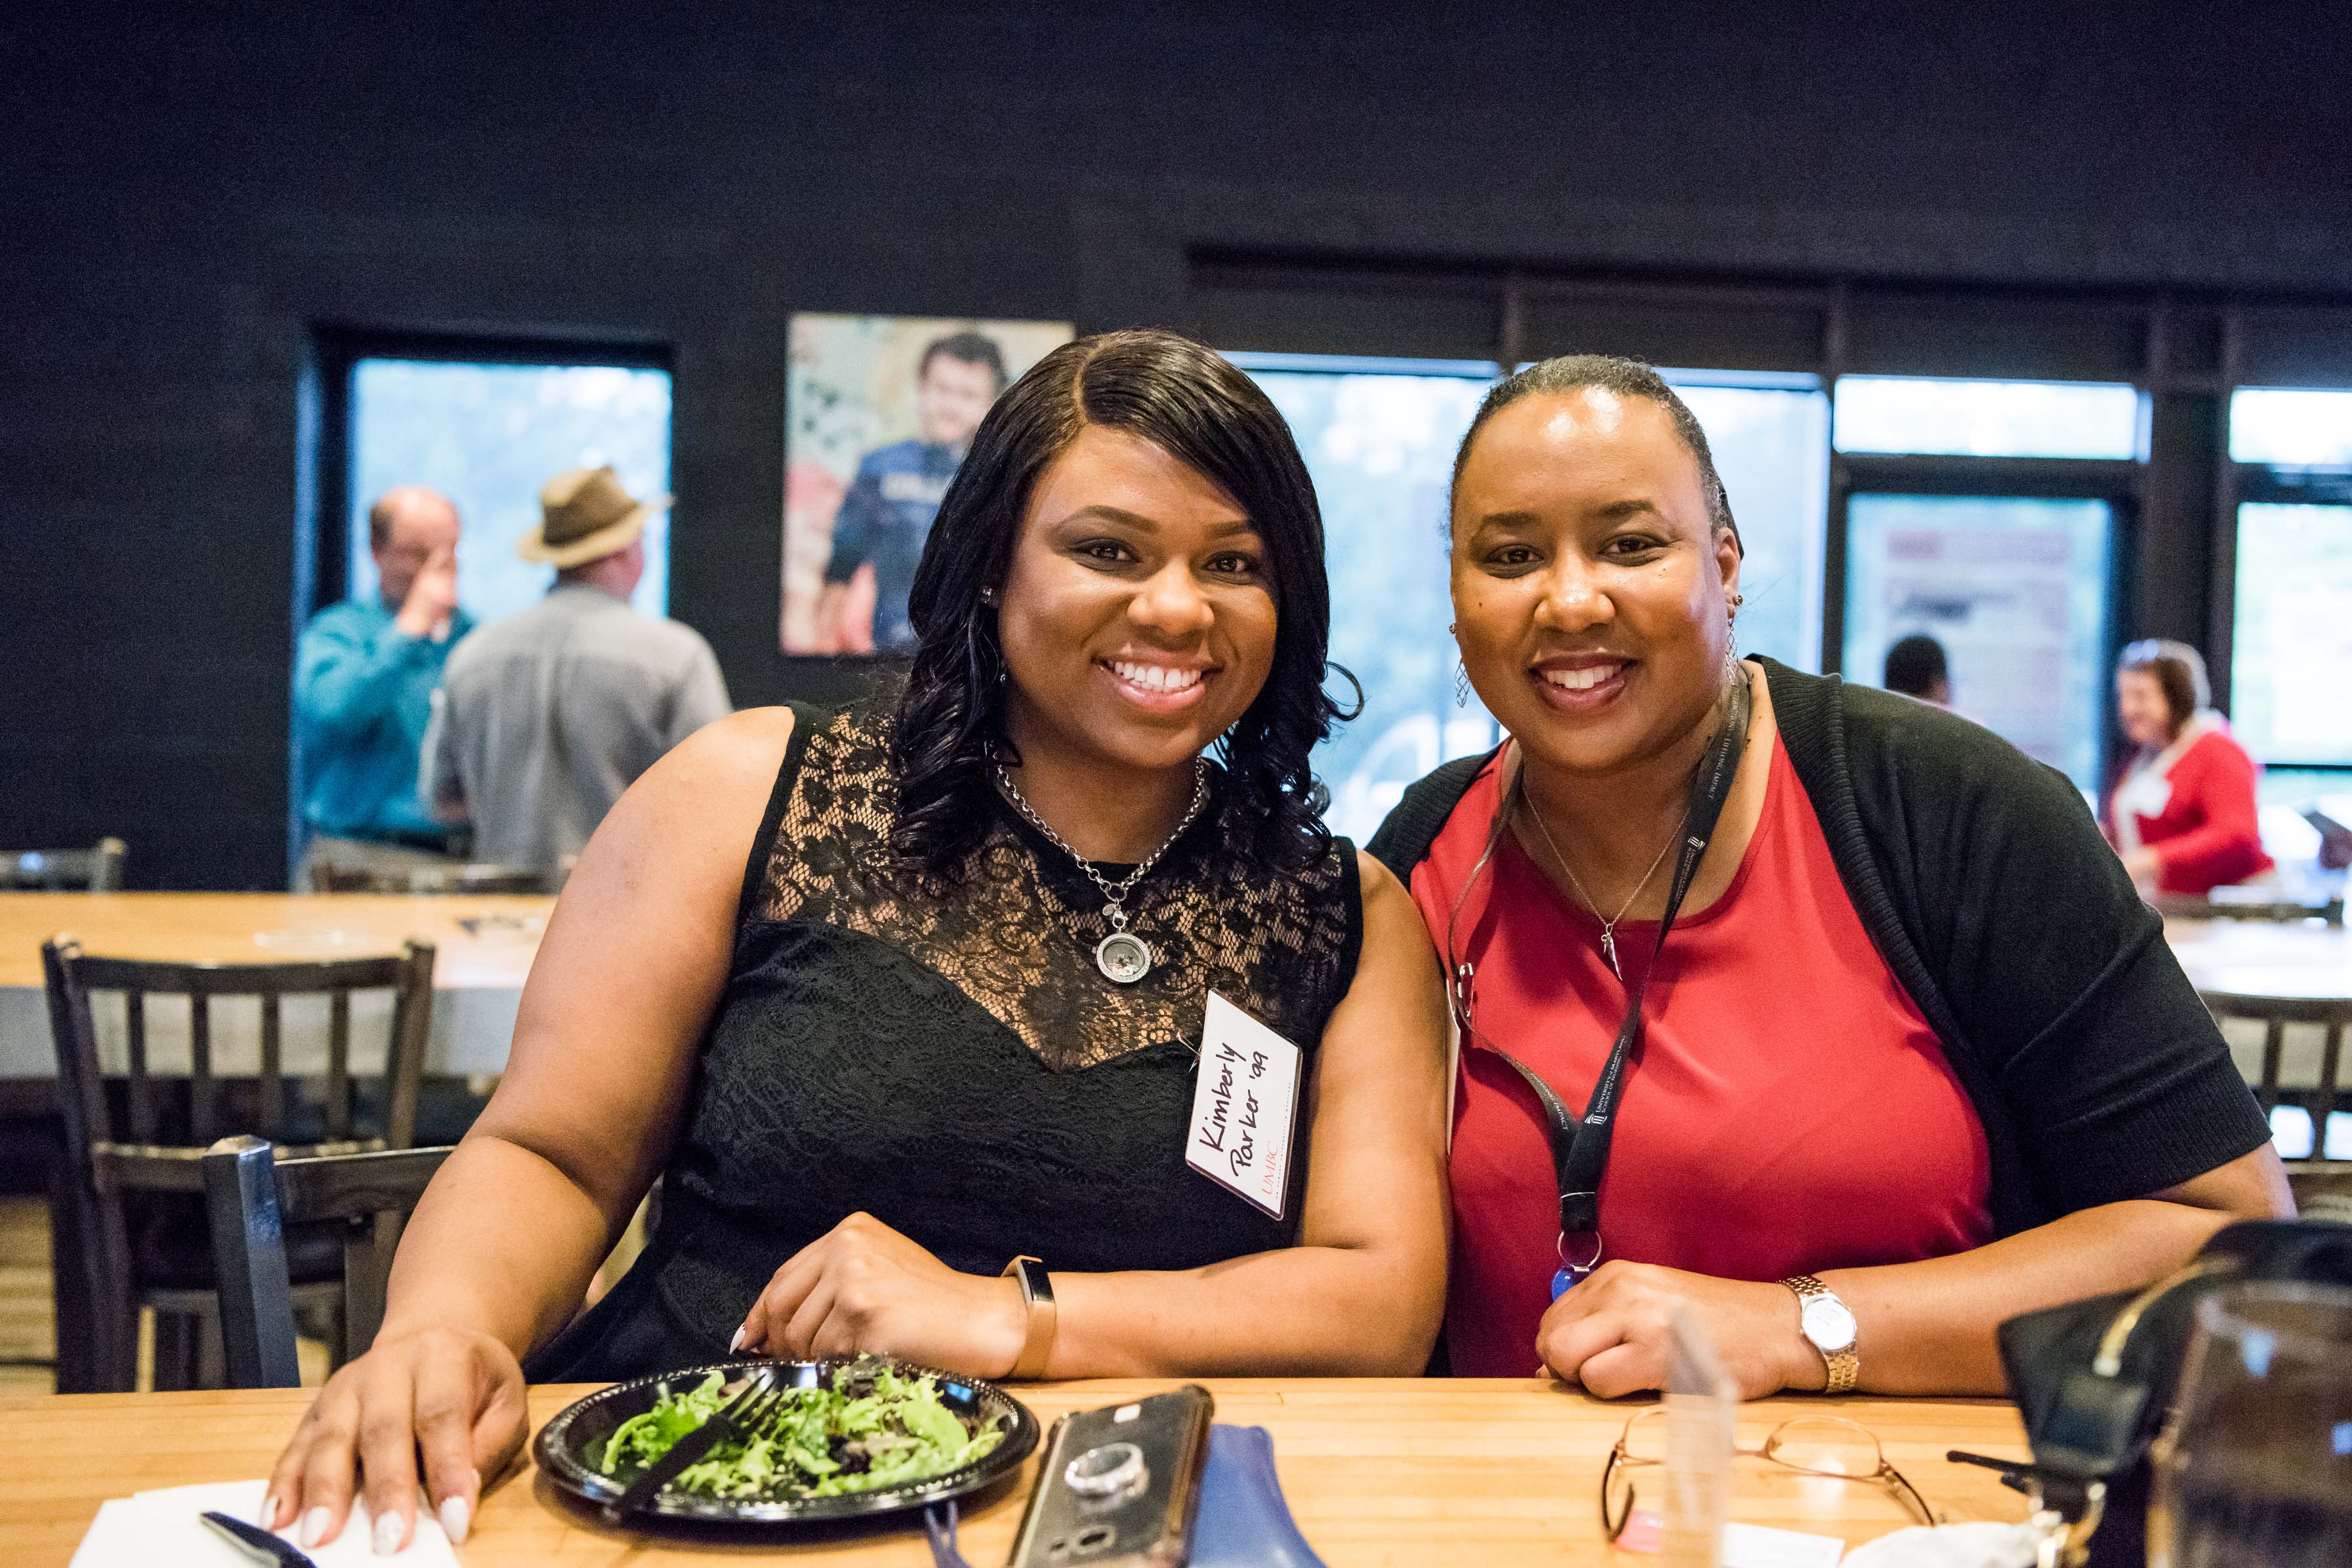 Two Women sit at table together at Jailbreak happy hour